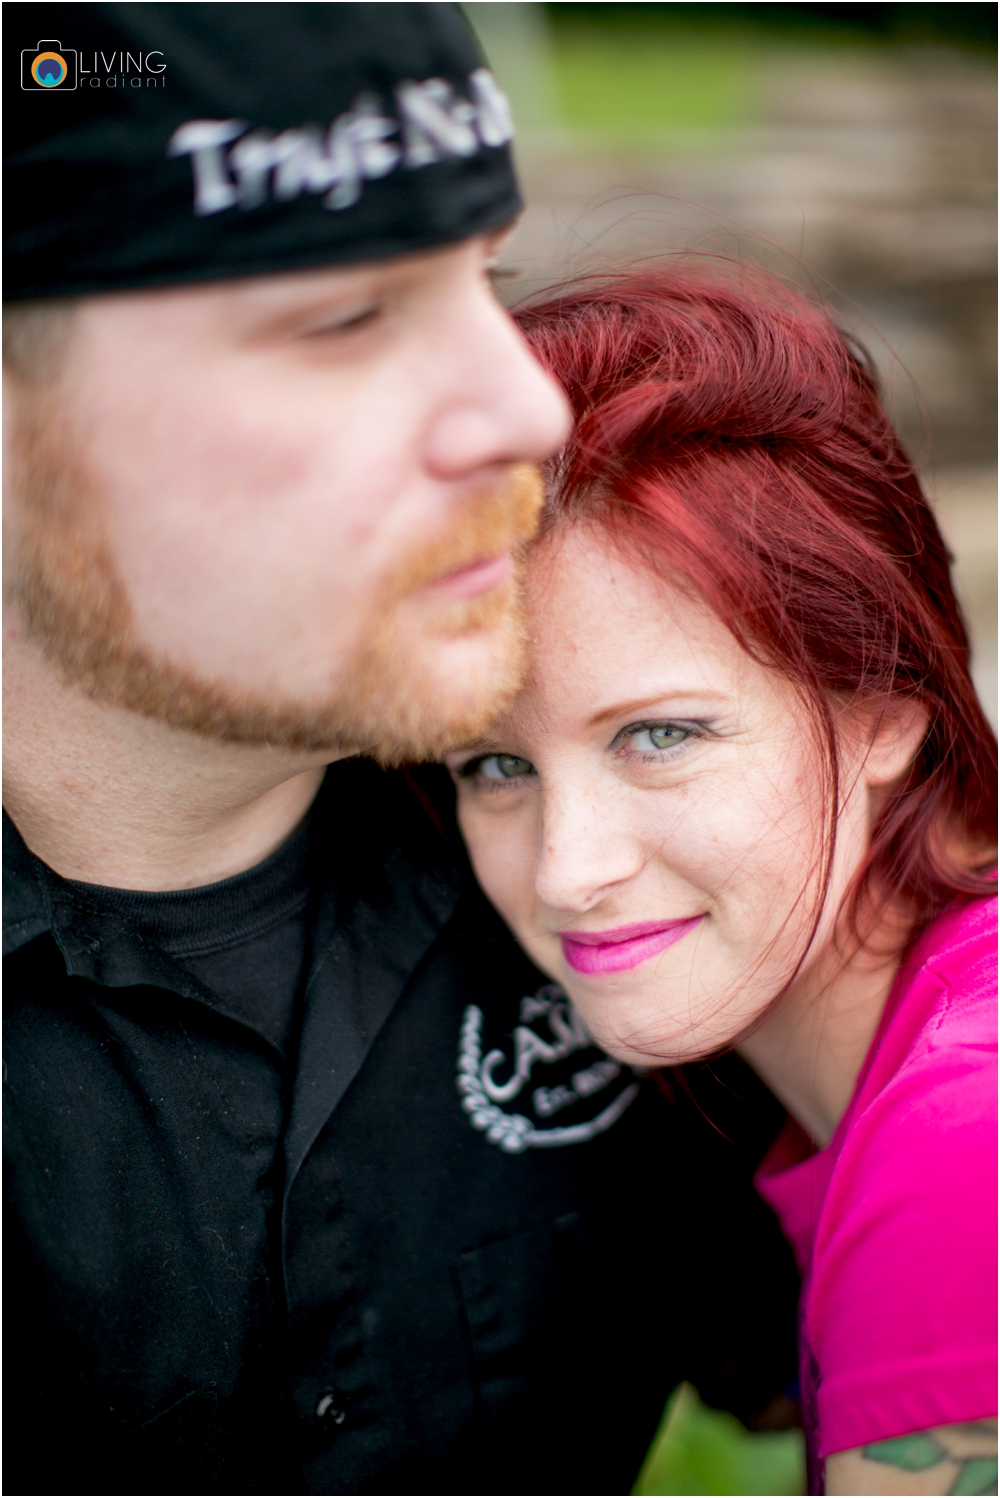 crystal-mike-engagement-session-ellicott-city-maryland-living-radiant-photography_0010.jpg